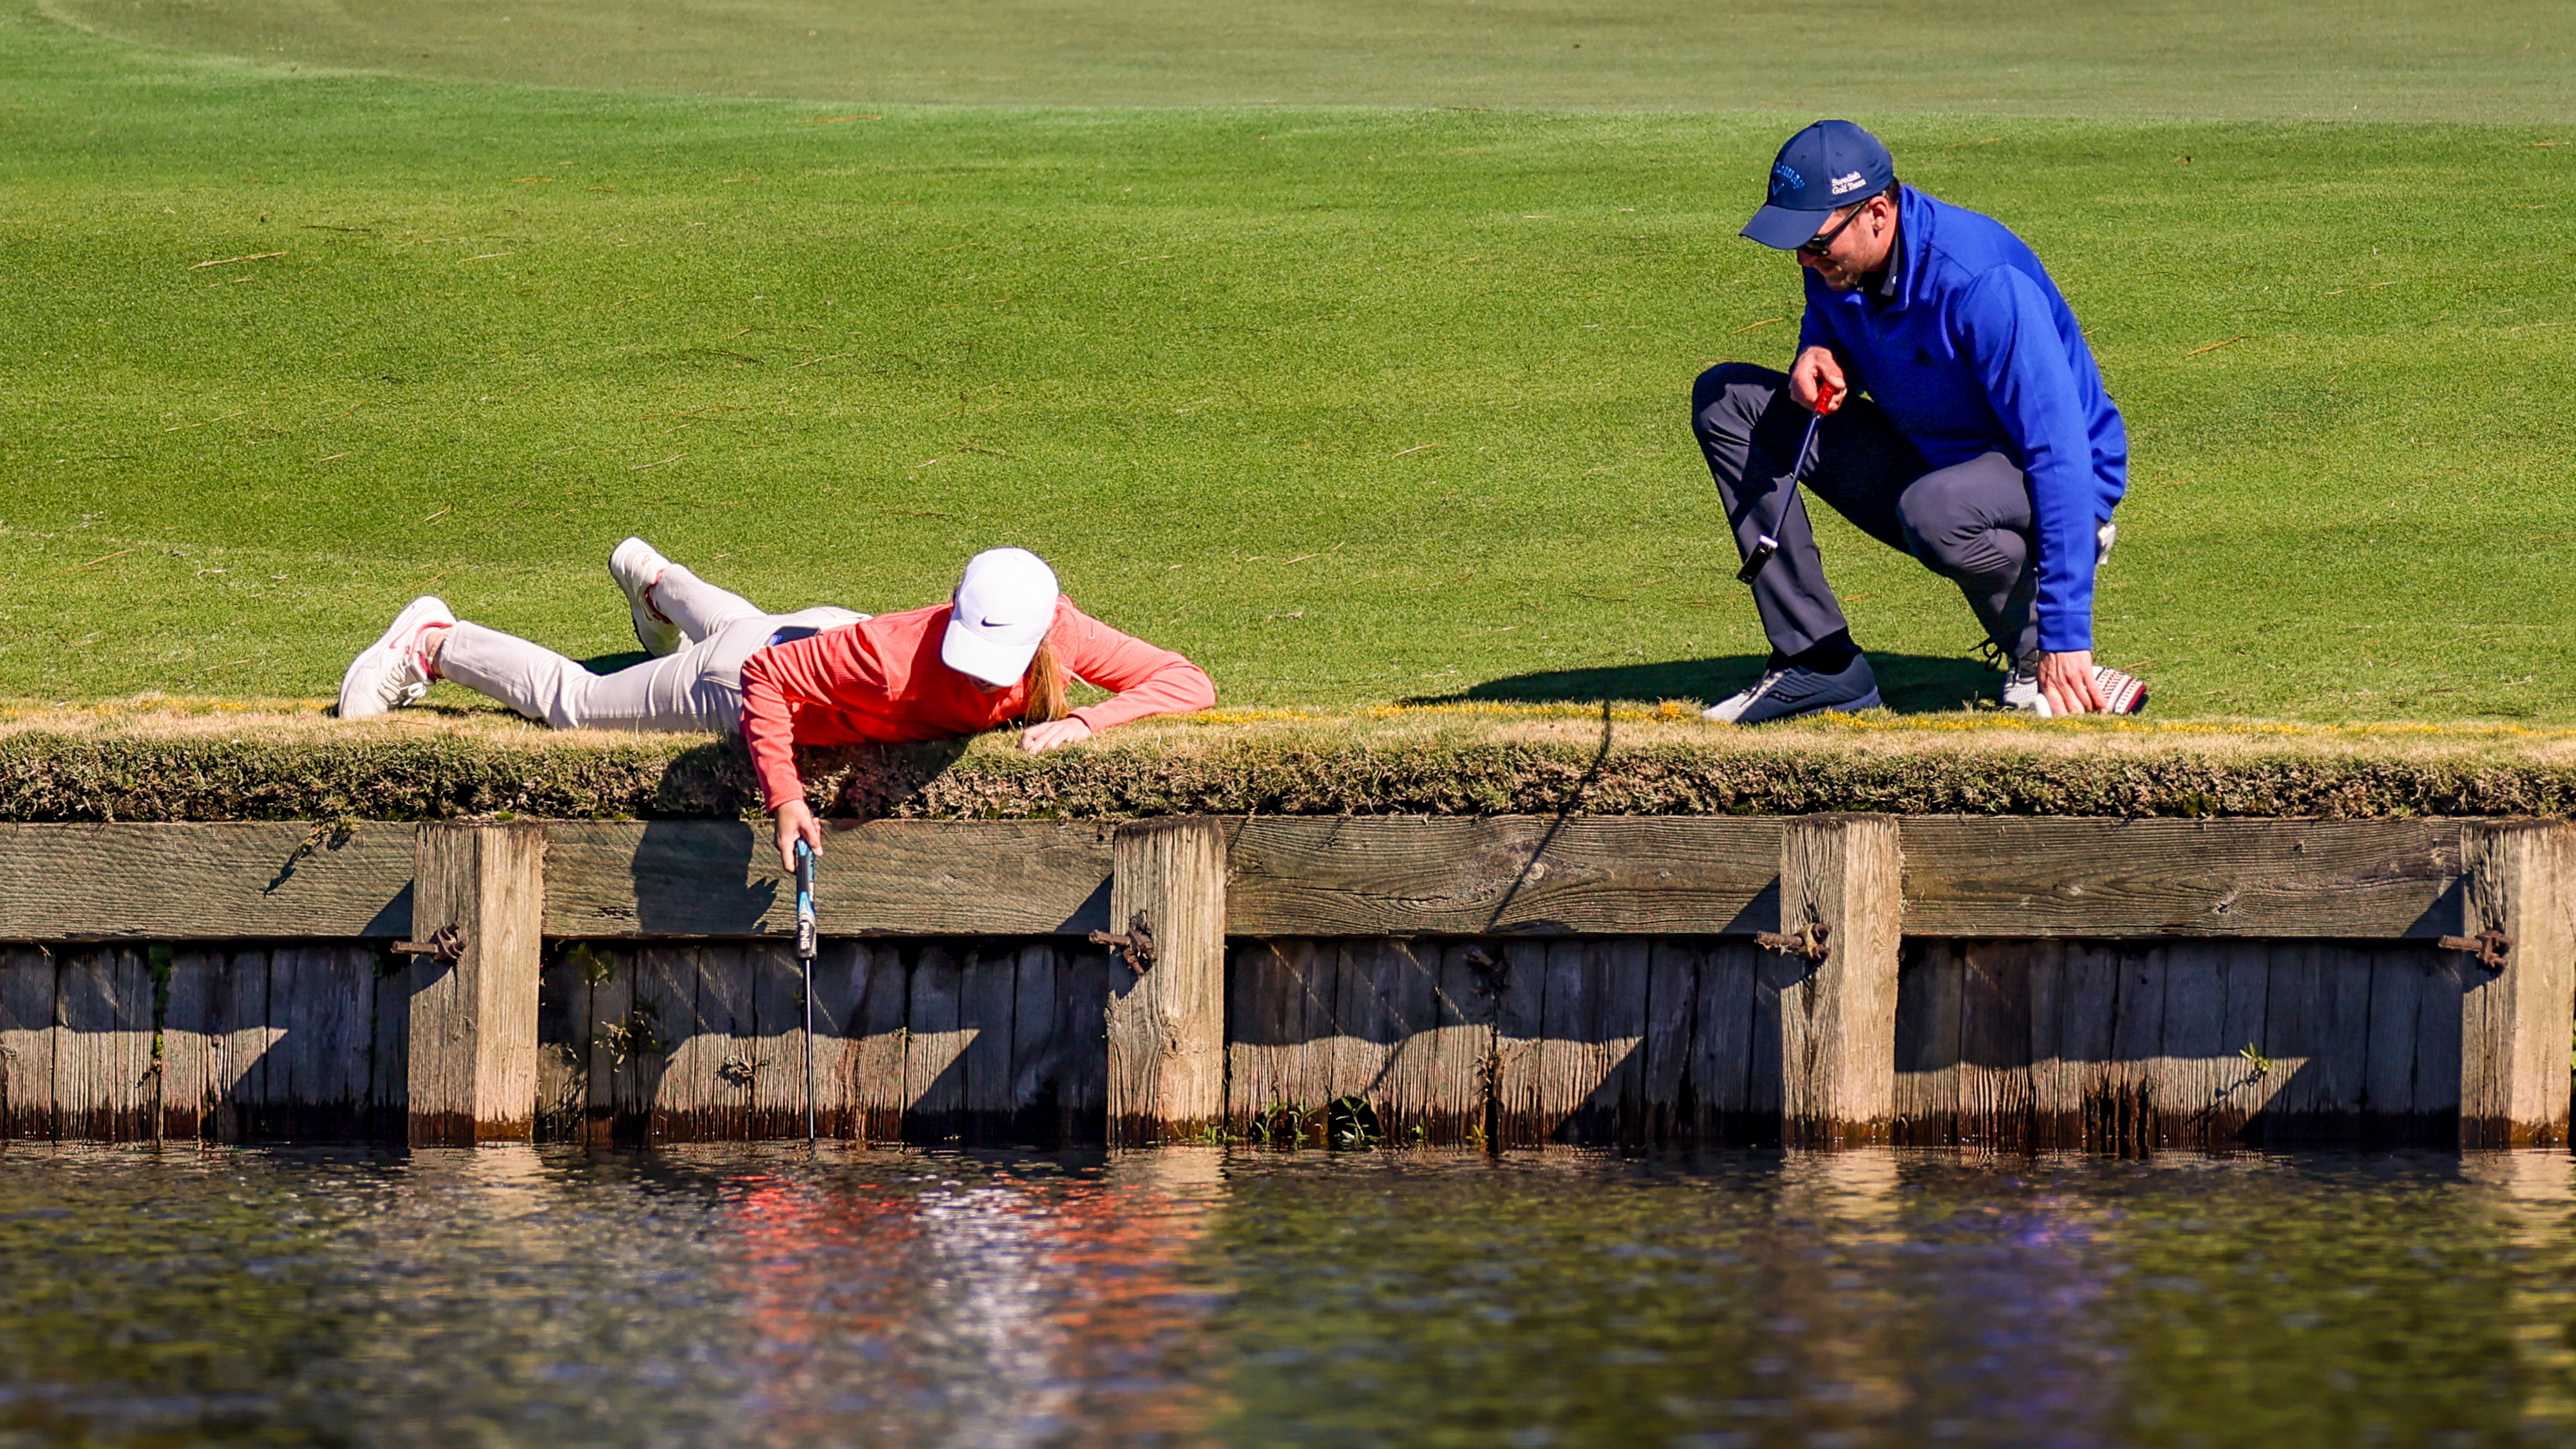 http://res.cloudinary.com/usga/image/upload/v1/usga/images/championships/2020/womens-open/galleries/monday-practice-round/20USWO_12072X1A2222.jpg